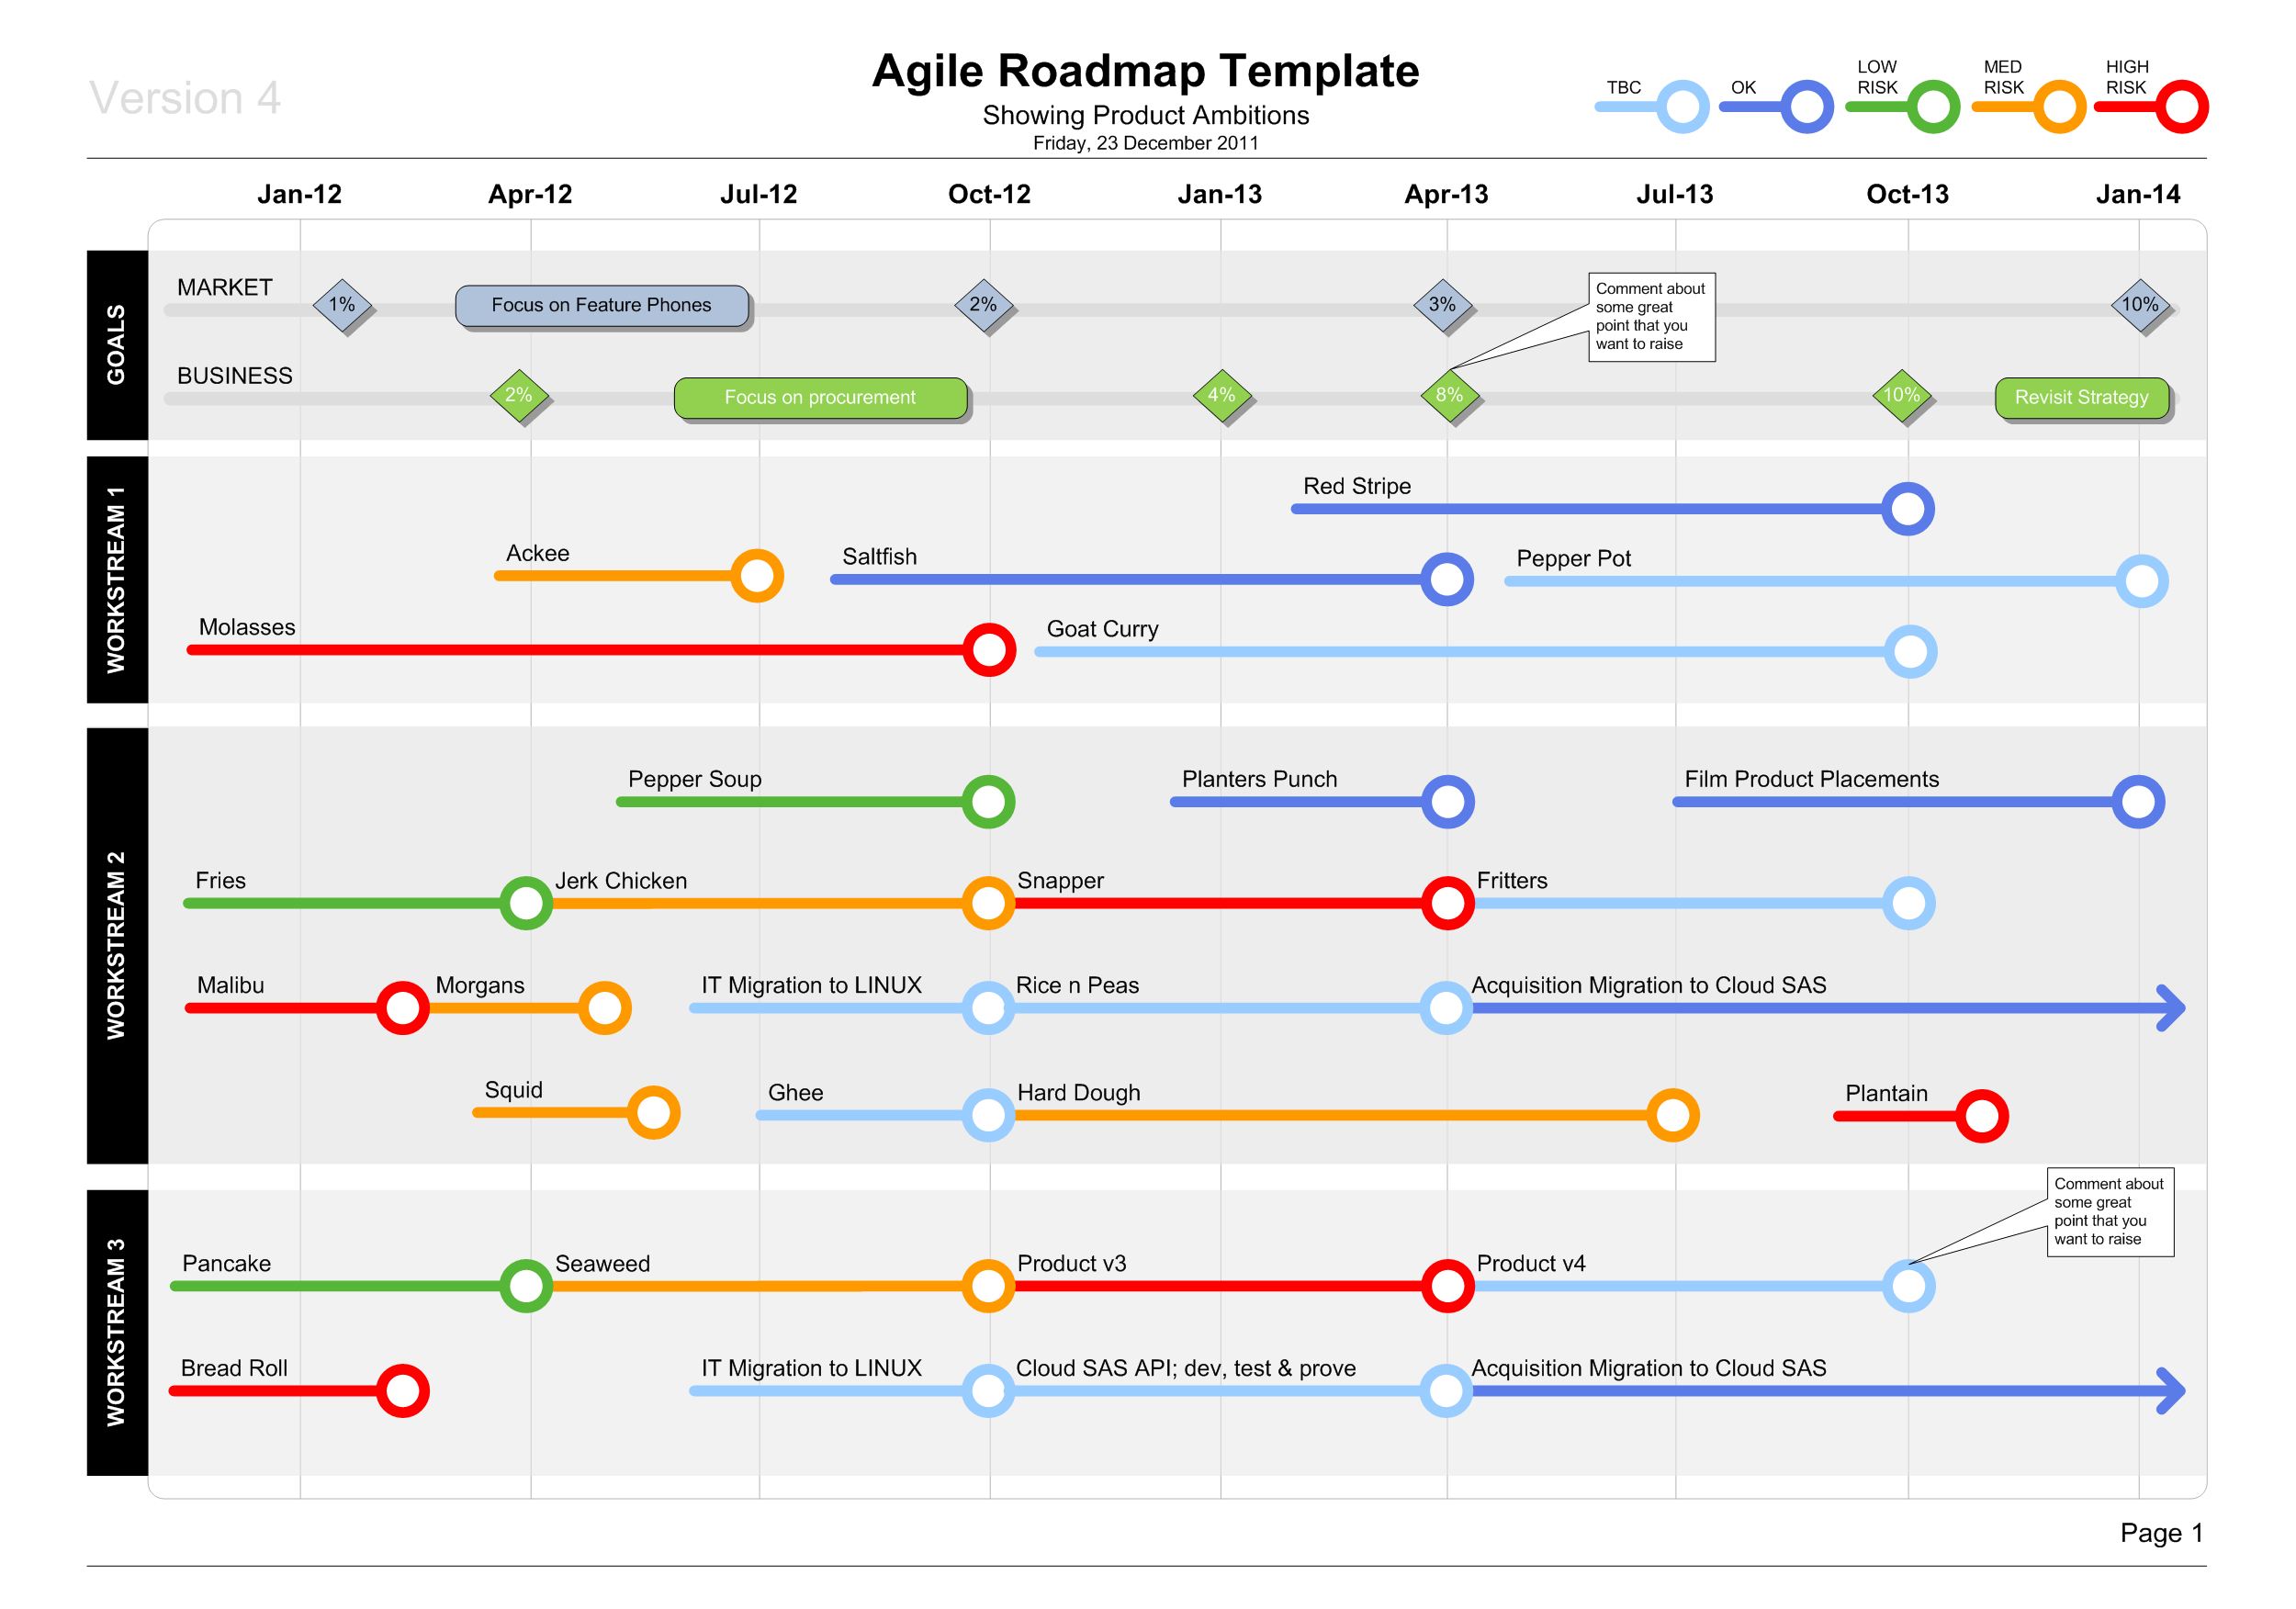 Agile Roadmap Template Visio Timeline Template And Project - Timeline template visio